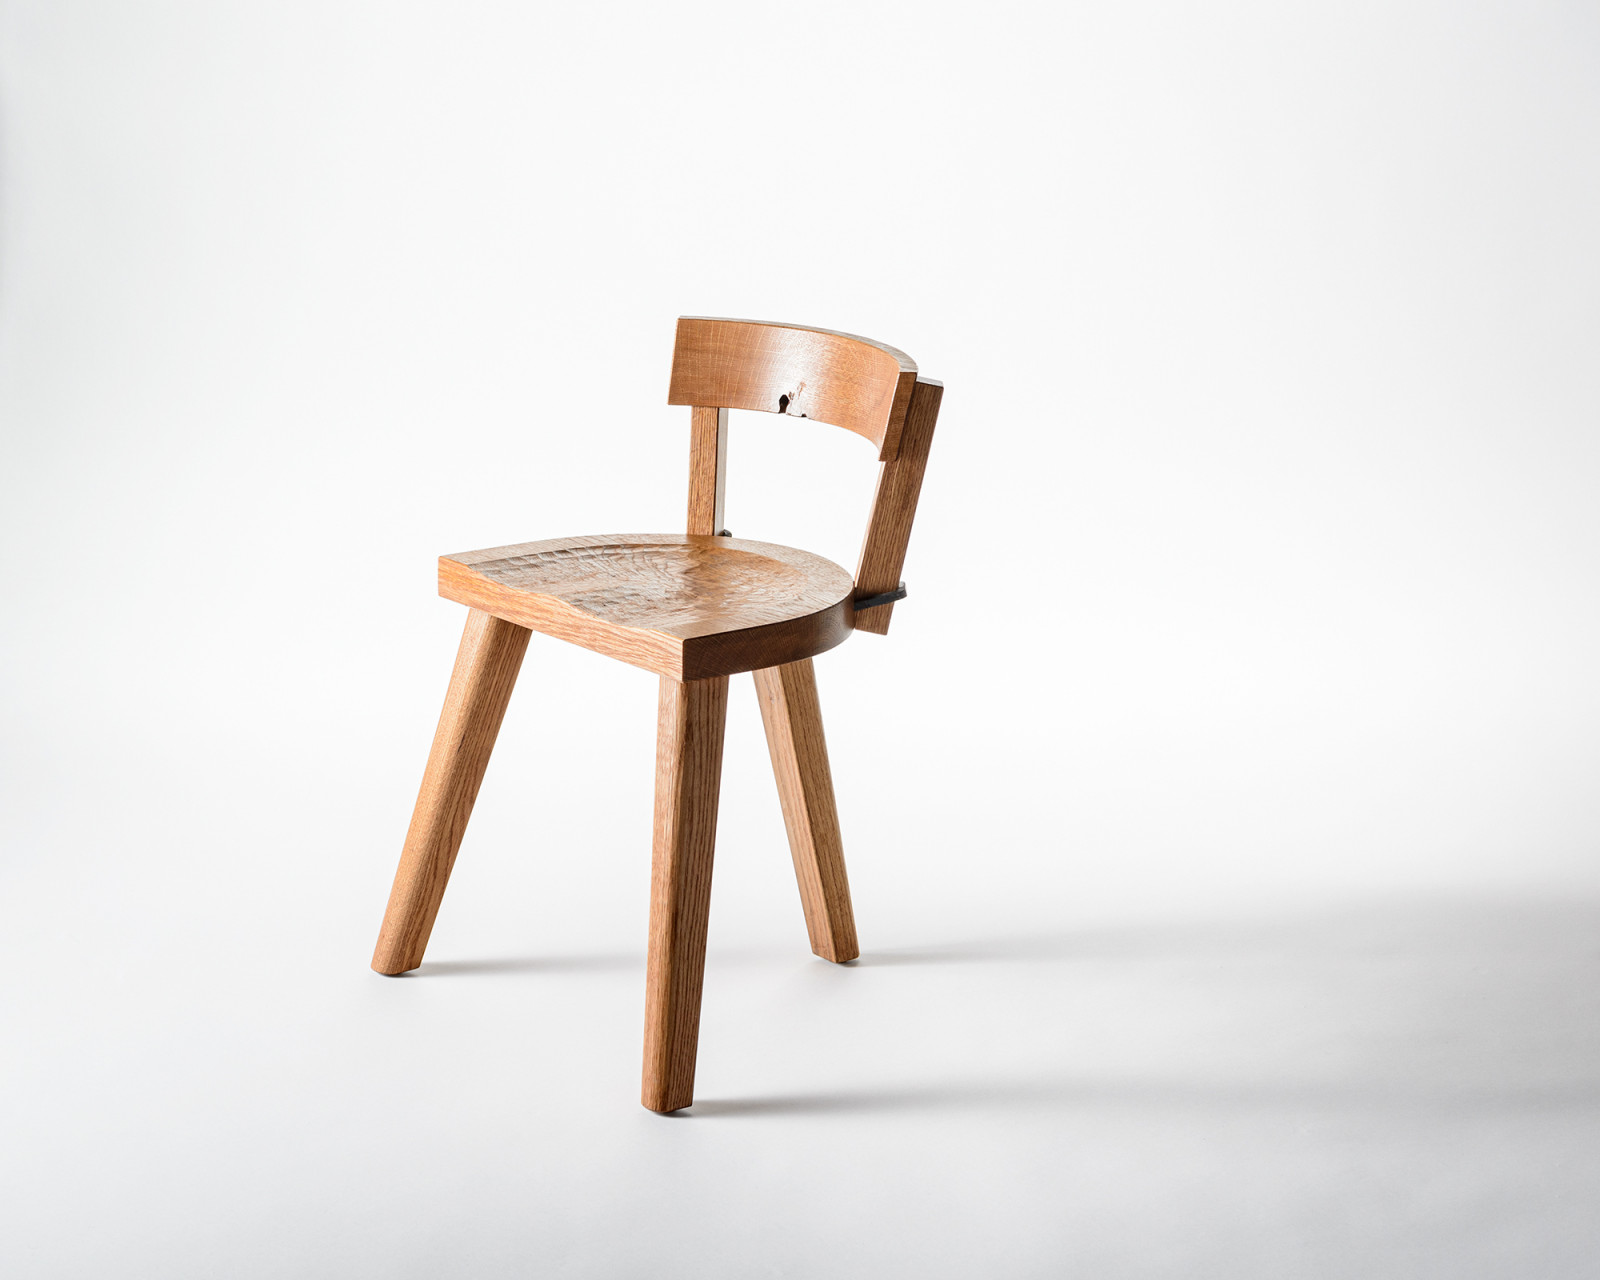 The Chair with three legs - Furniture Marolles / Carneros Studios